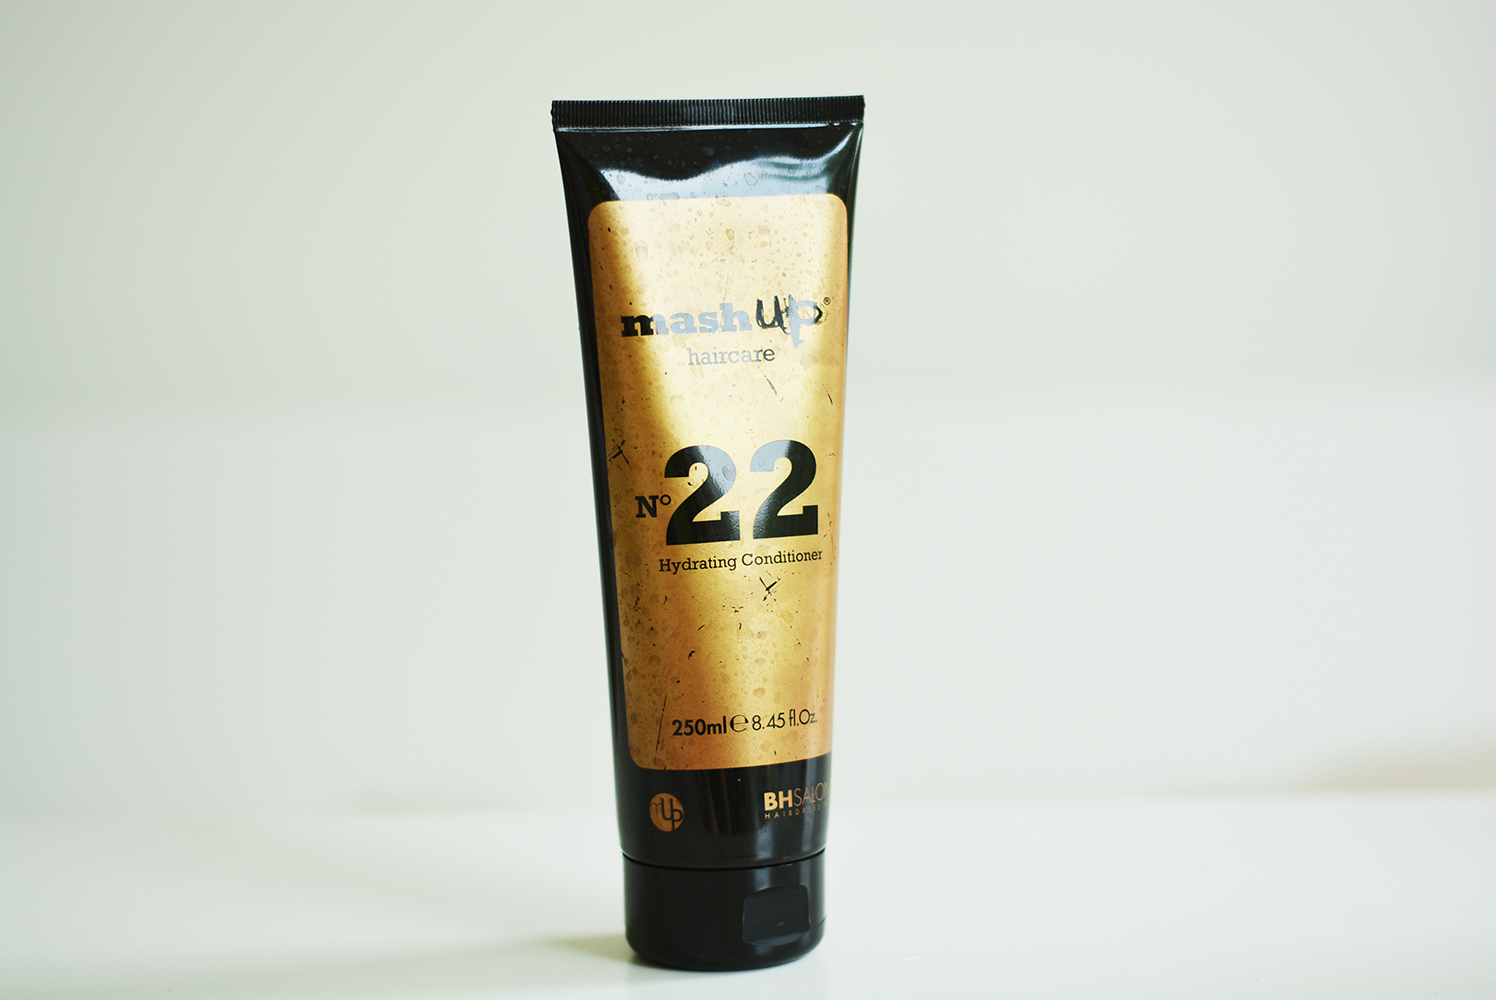 MashUp Haircare Hydrating Conditioner 22